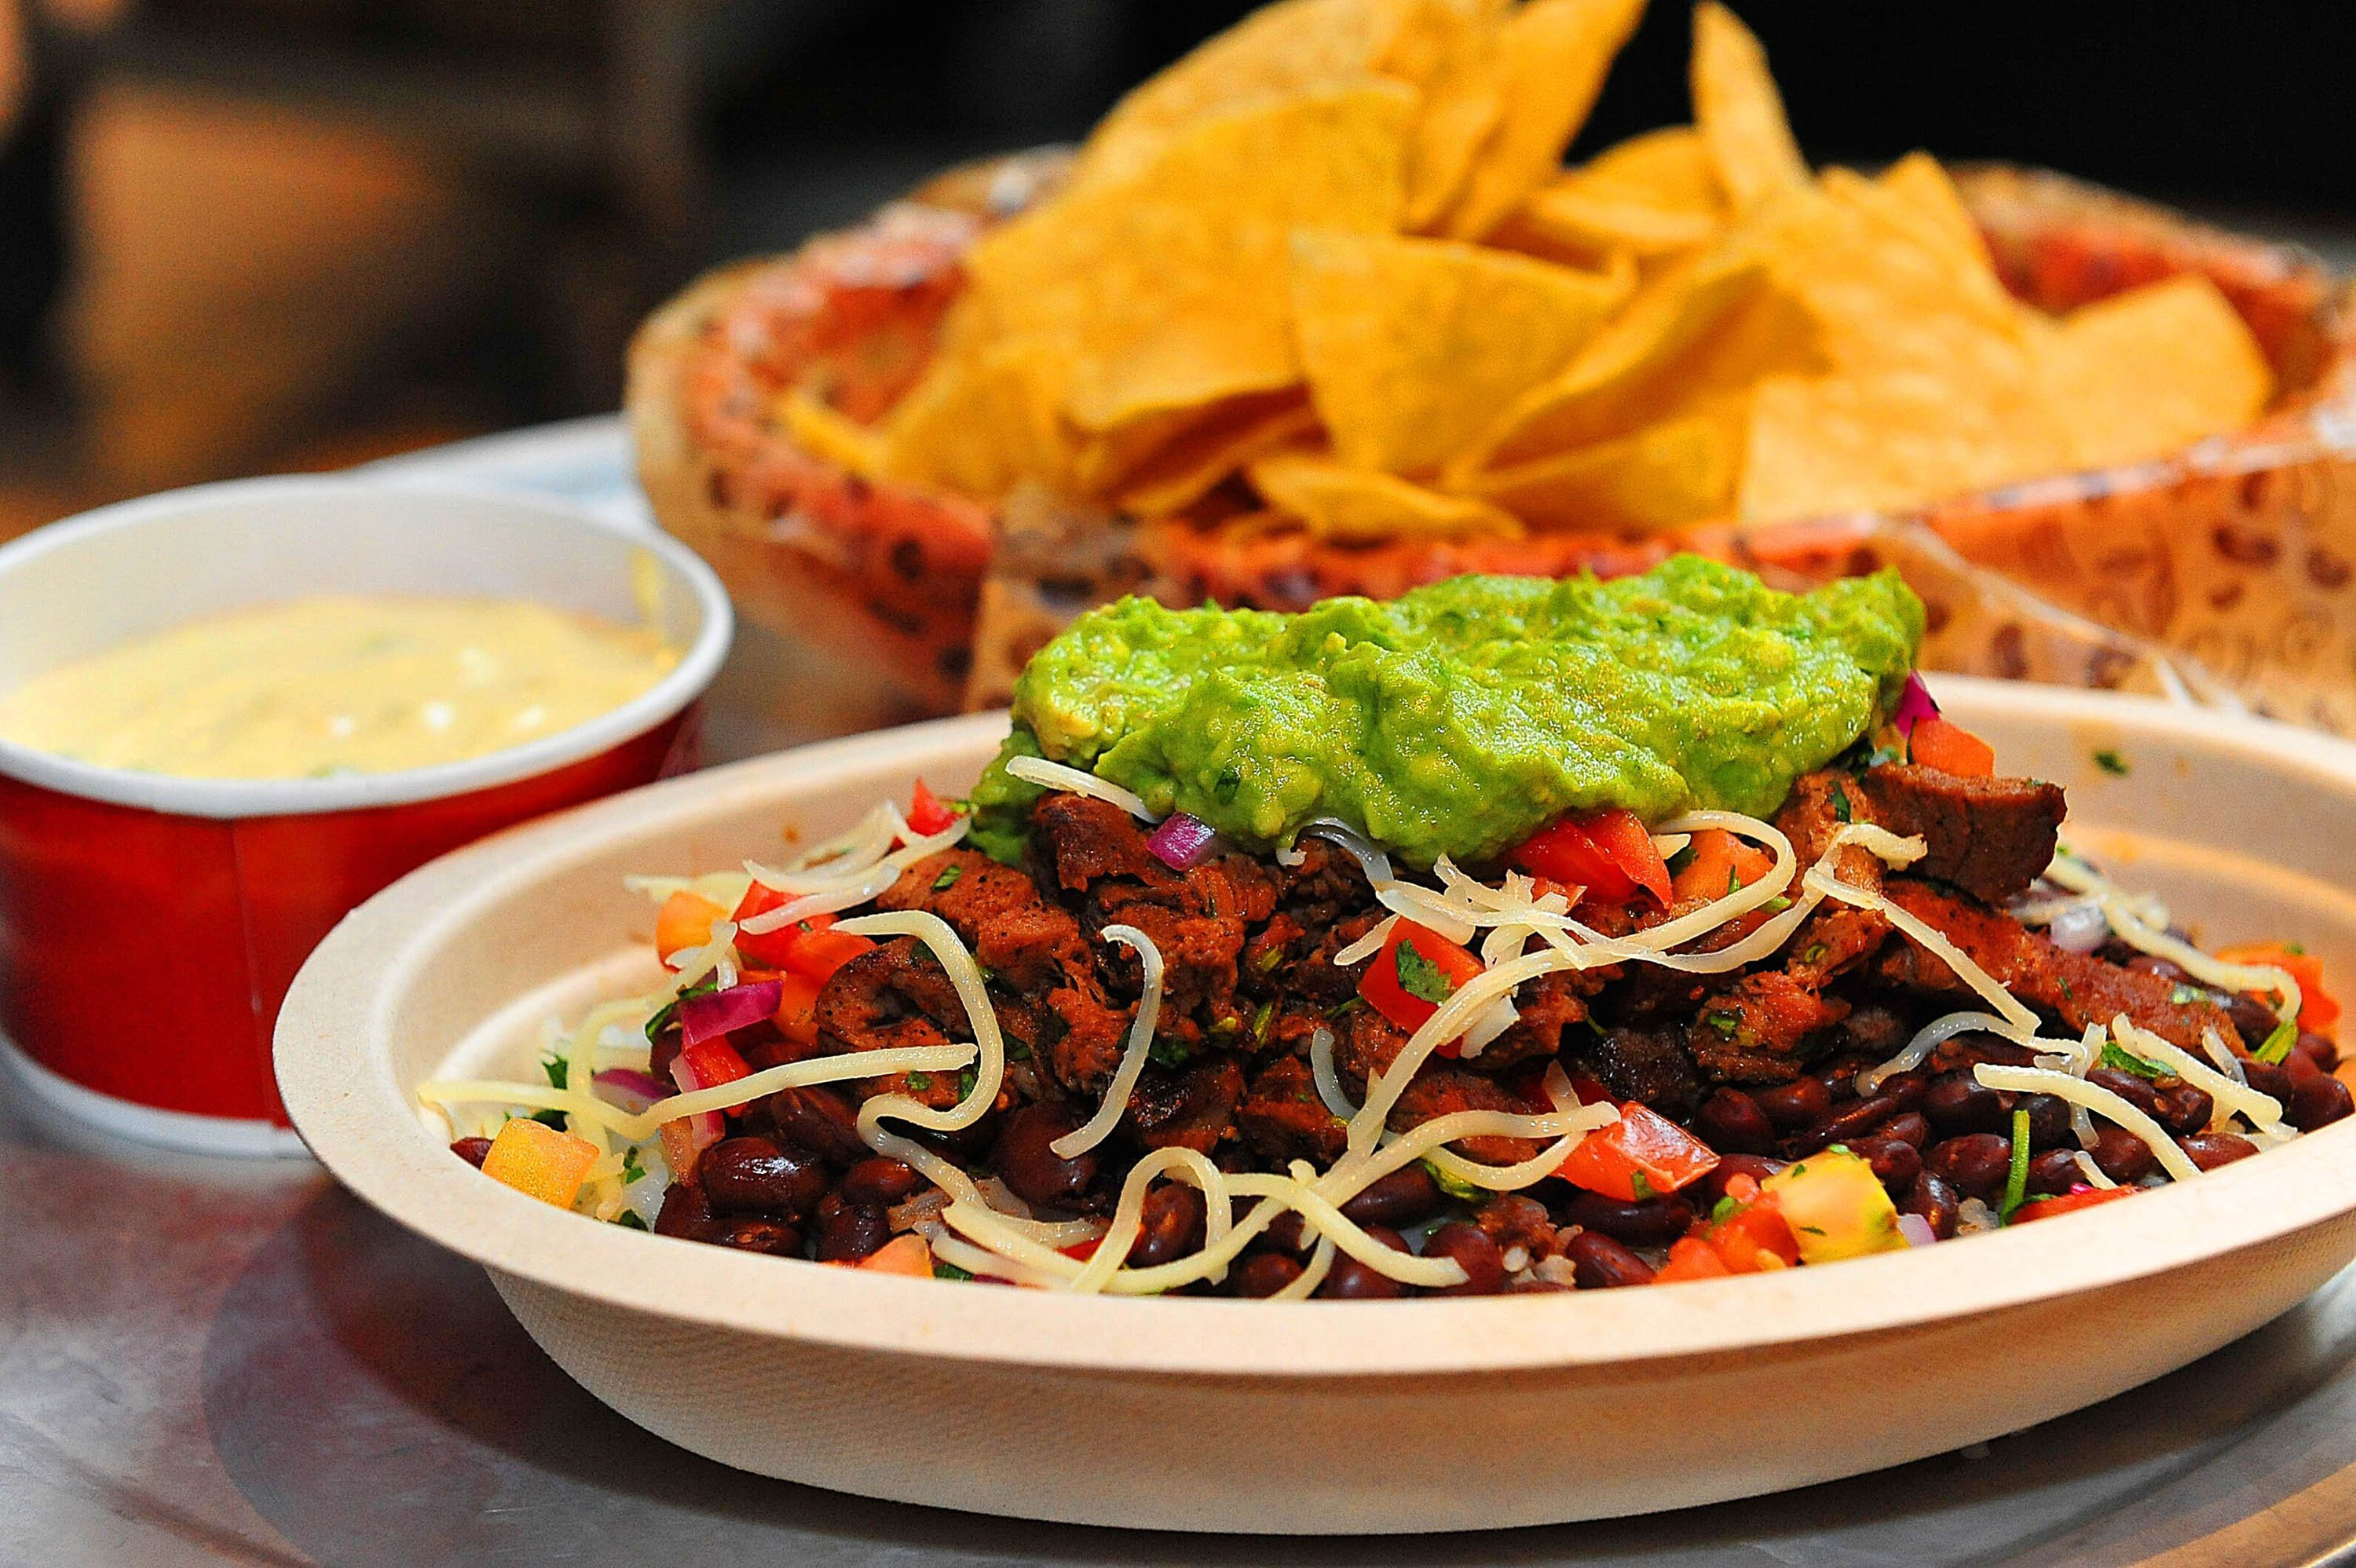 Chipotle's supply of carne asada is running low